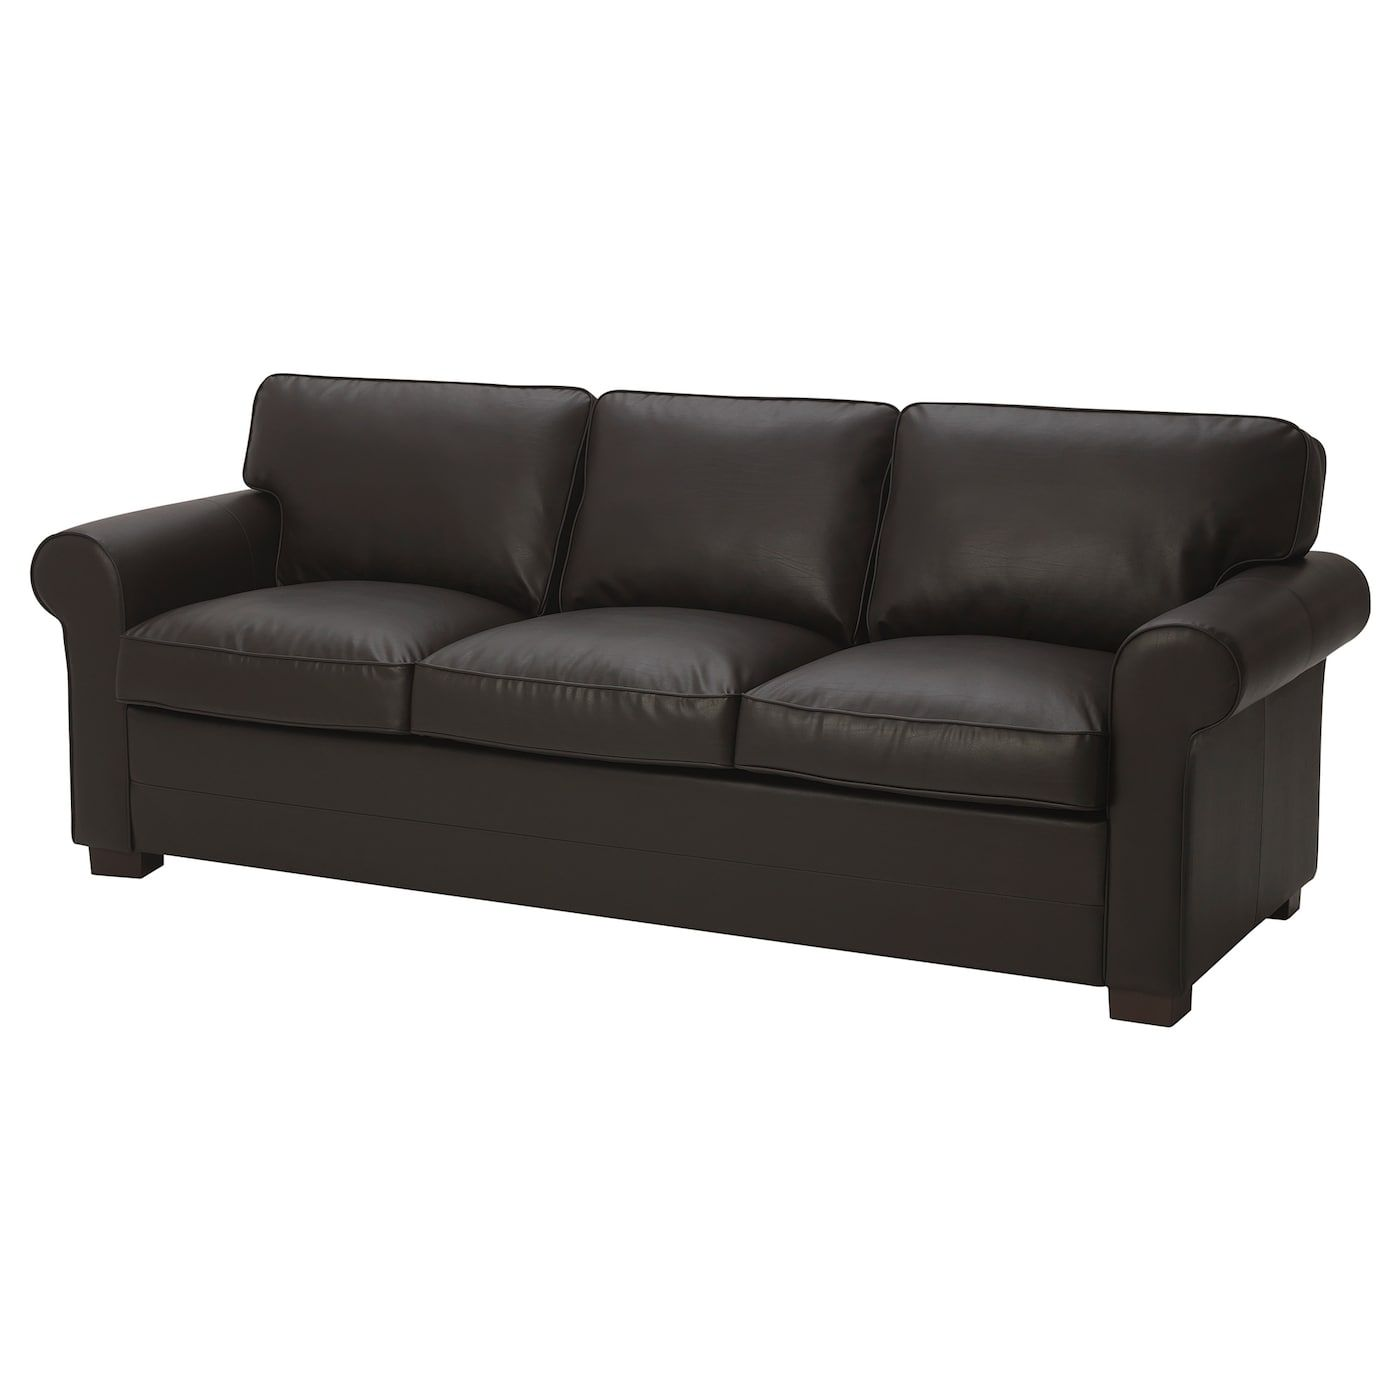 Ektorp 3 Seat Sofa Xl Skrea Dark Brown Sofa Ektorp Sofa Seating